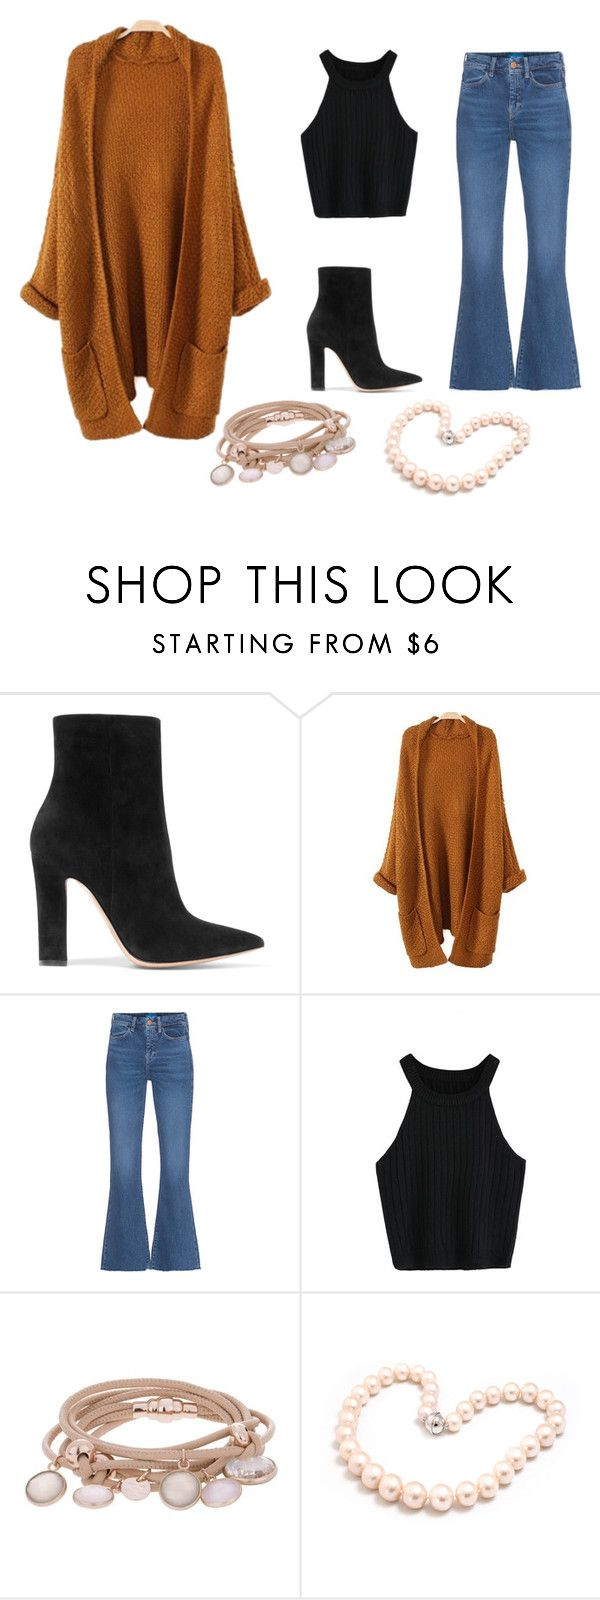 """""""If you watch Girl Meets World this is a Maya outfit"""" by caitlankeleher ❤ liked on Polyvore featuring Gianvito Rossi, M.i.h Jeans, Marjana von Berlepsch and Hiho Silver"""